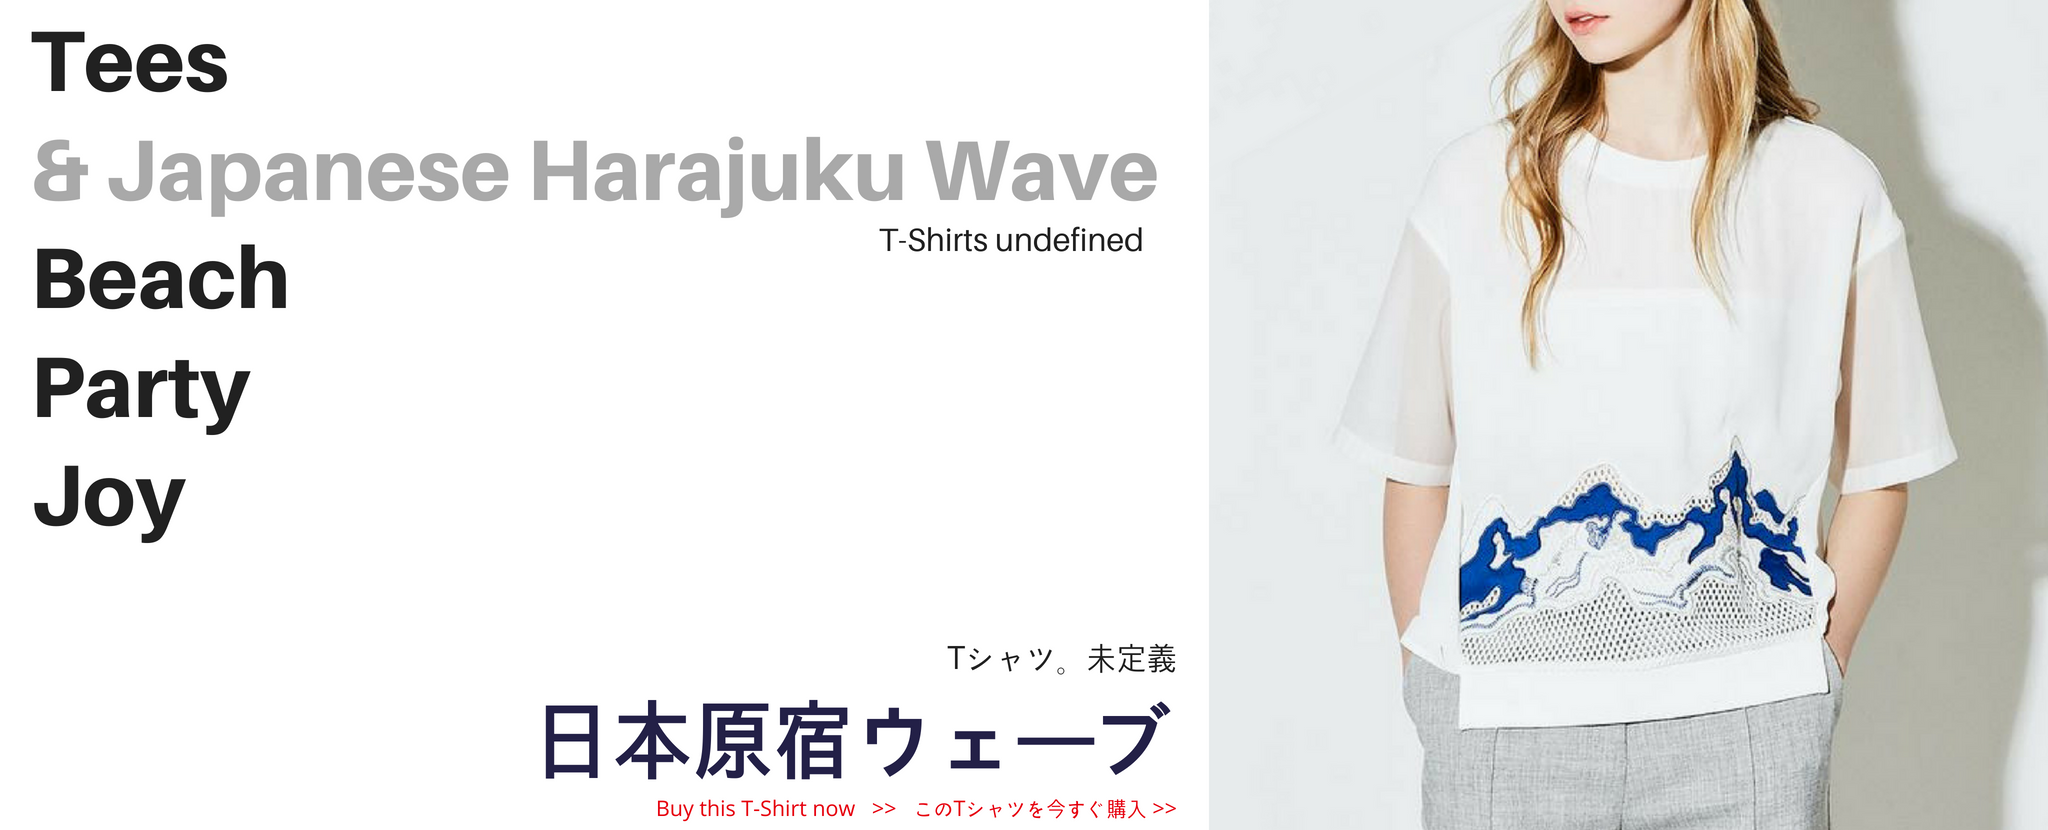 miTeigi Womans T-Shirt Collection - Japanese Harajuku Wave  日本原宿ウェーブ